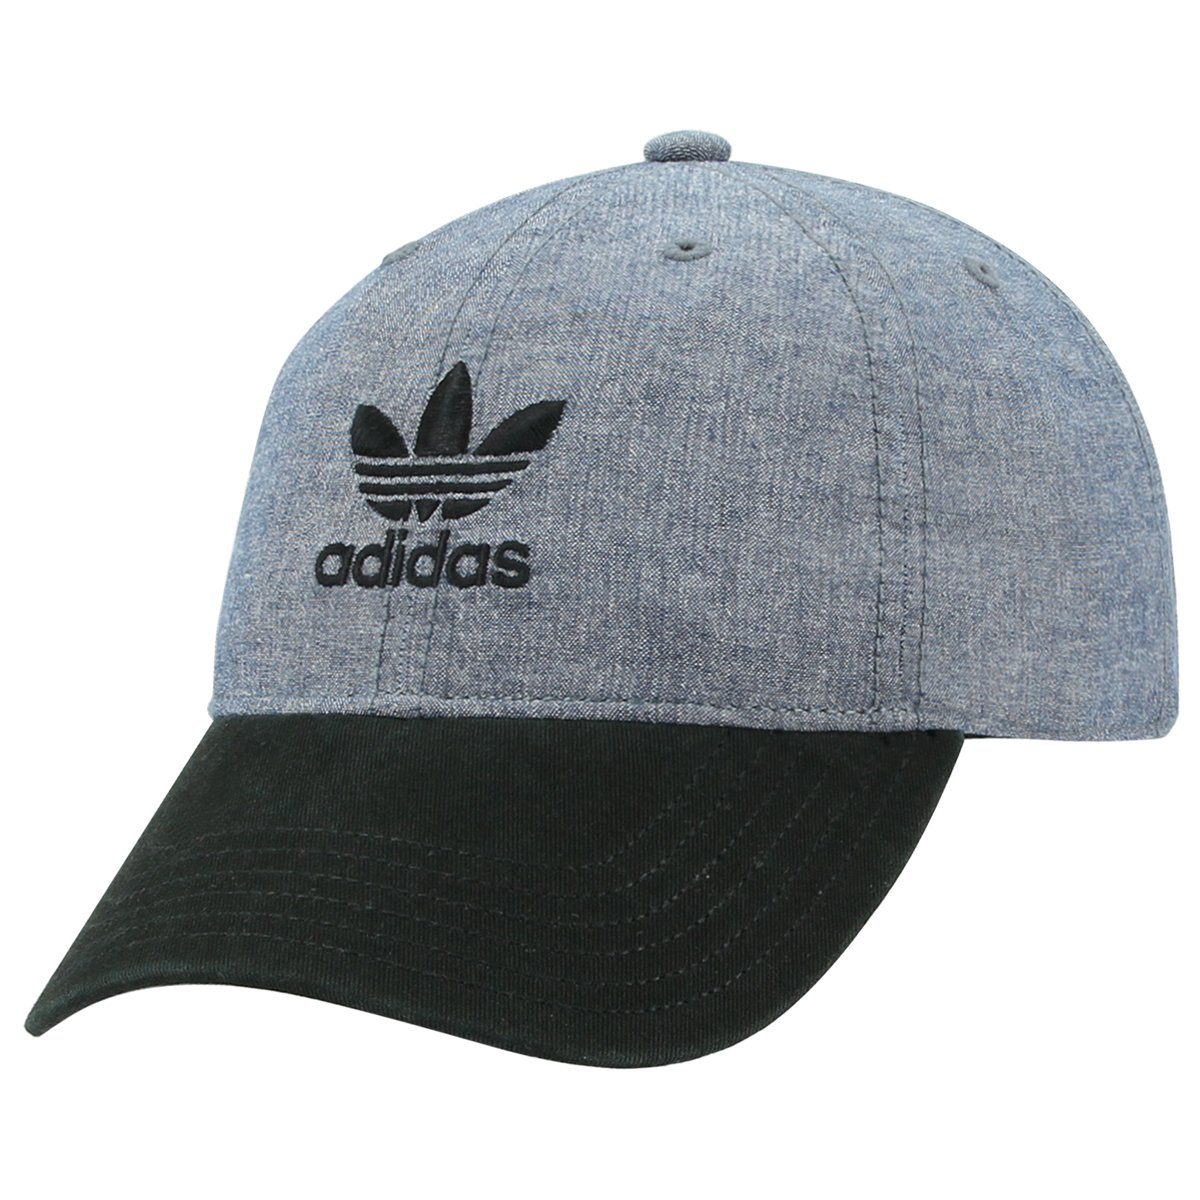 adidas Women's Originals Relaxed Adjustable Strapback Cap, Blue Chambray/Black, One Size